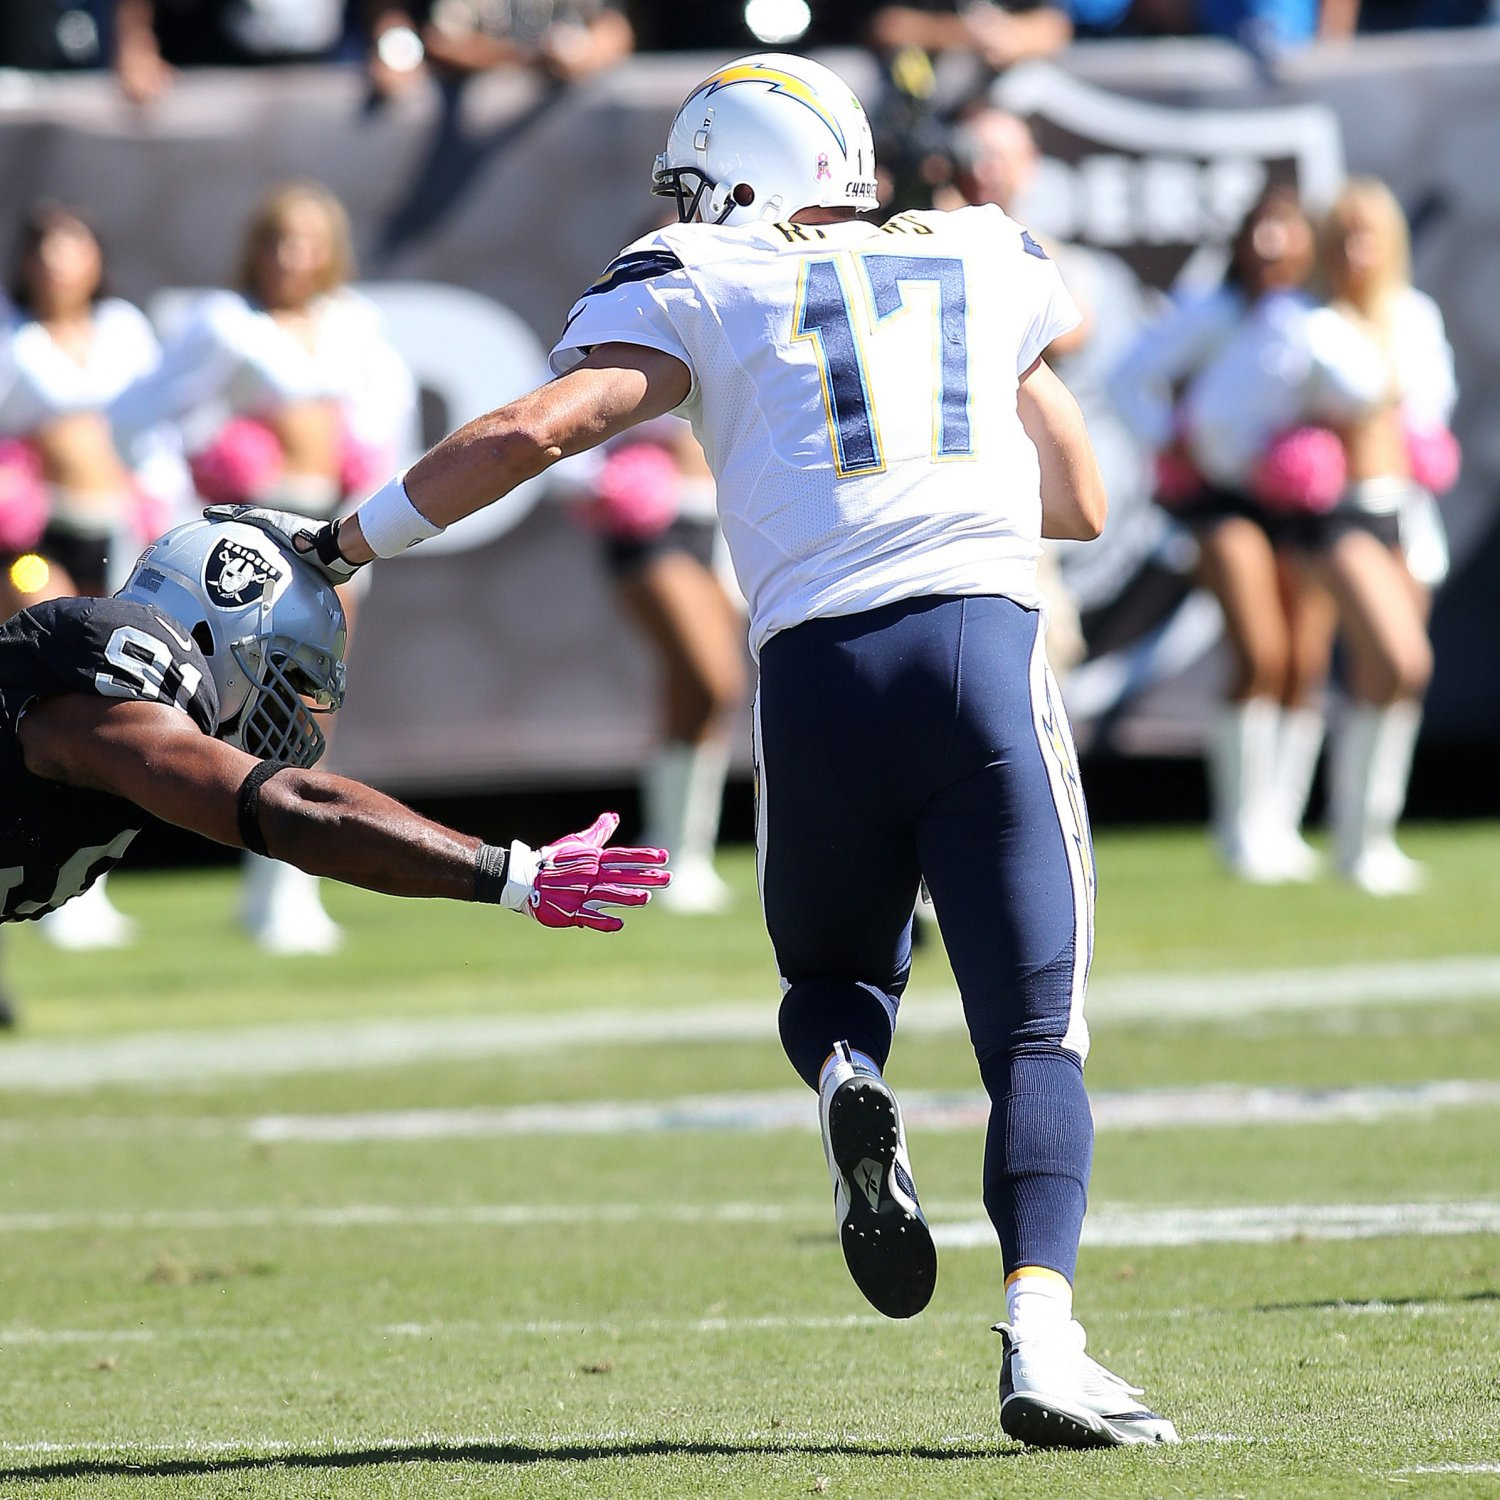 San Diego Chargers Current Score: The Latest San Diego Chargers News